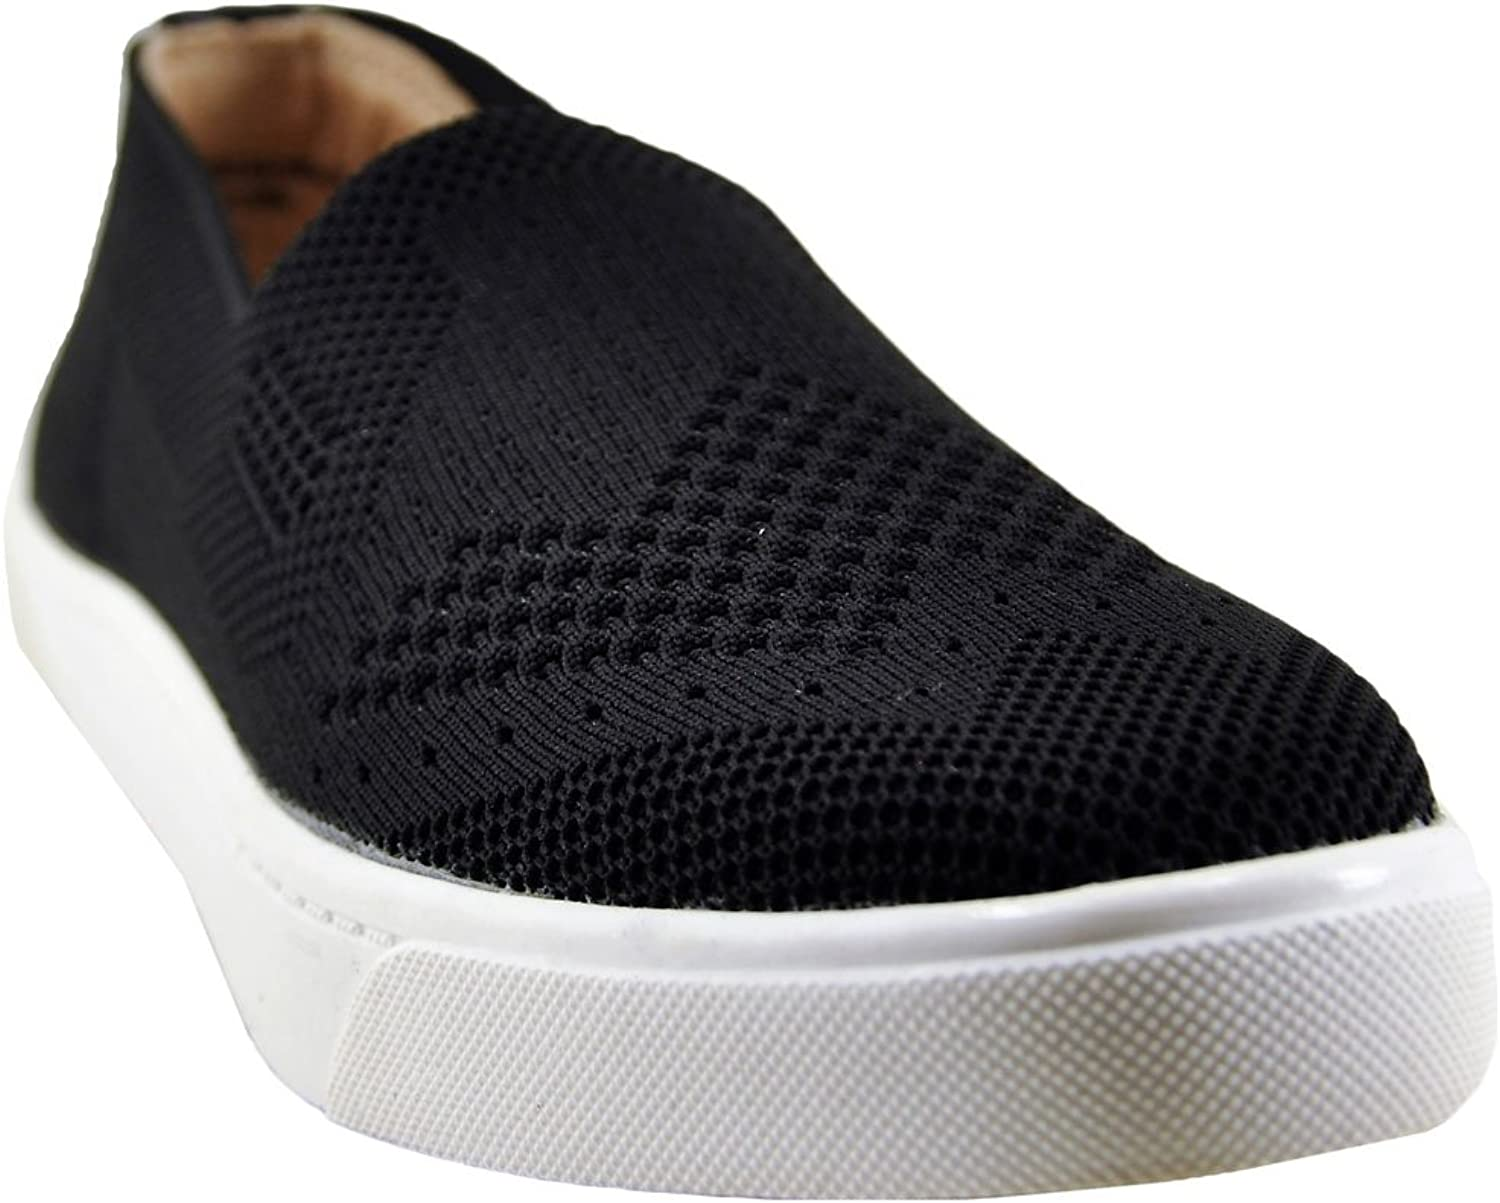 Soda Globe-G Women's Mesh Slip On Loafer